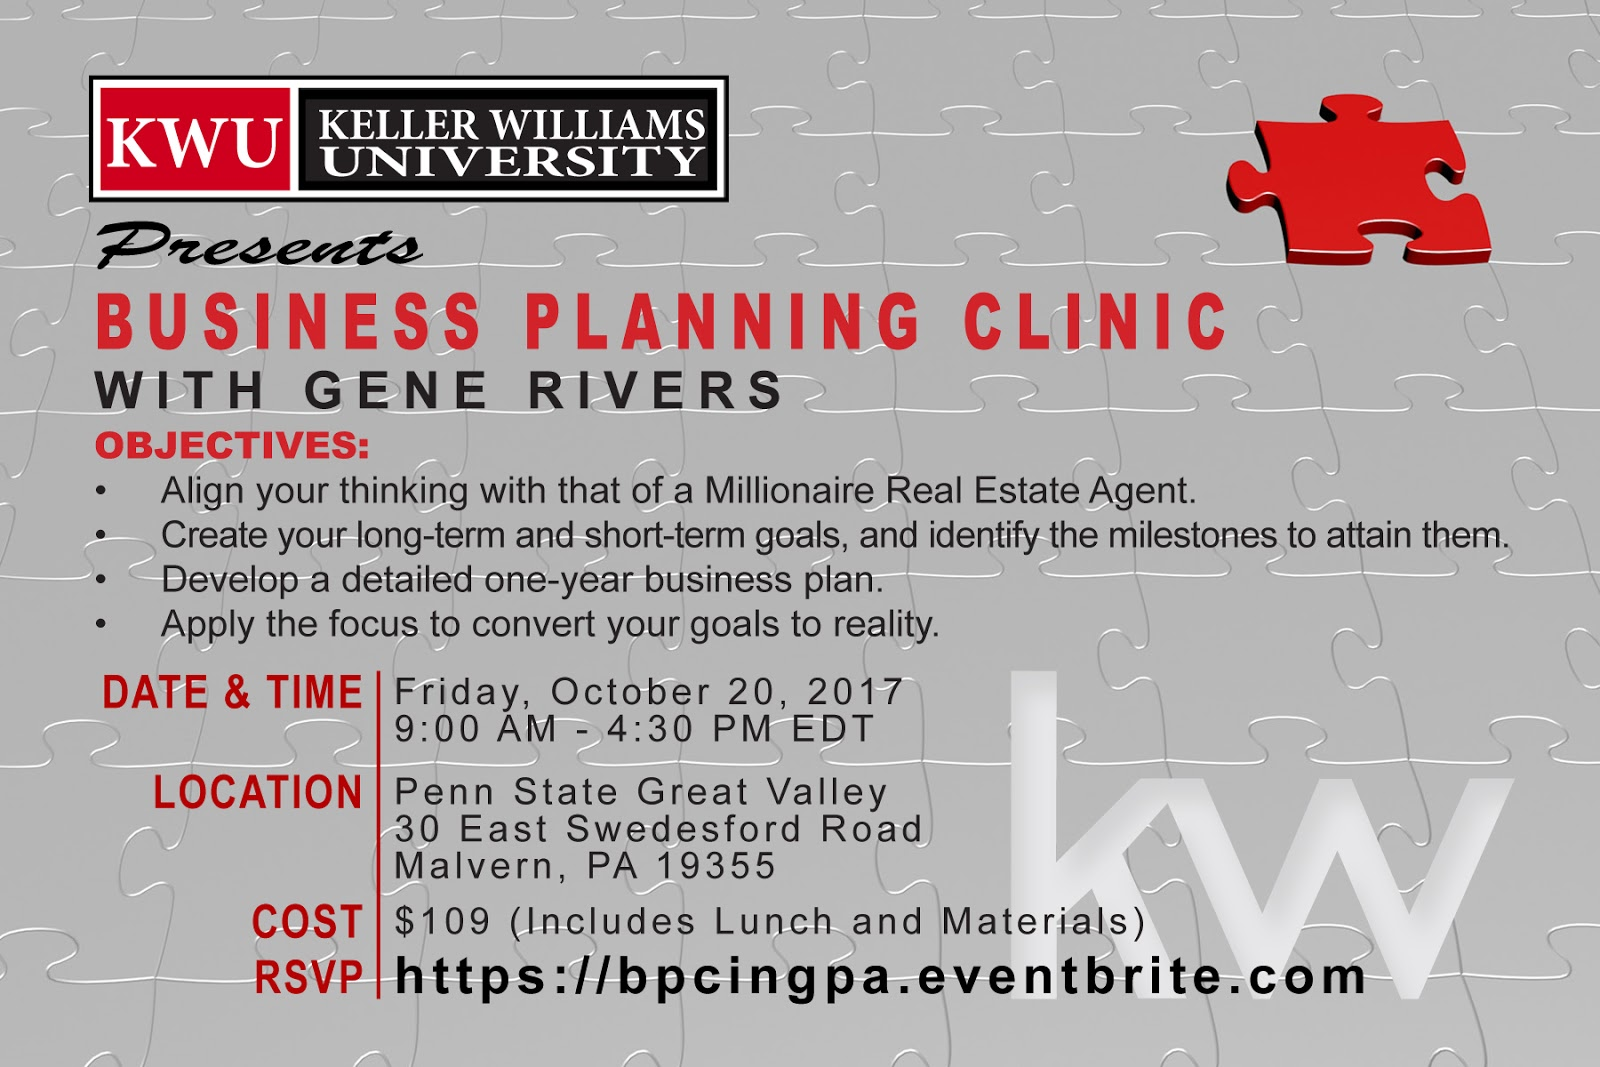 millionaire real estate agent business plan Business Planning Clinic is Coming Oct. 20th!! Tickets are going ...